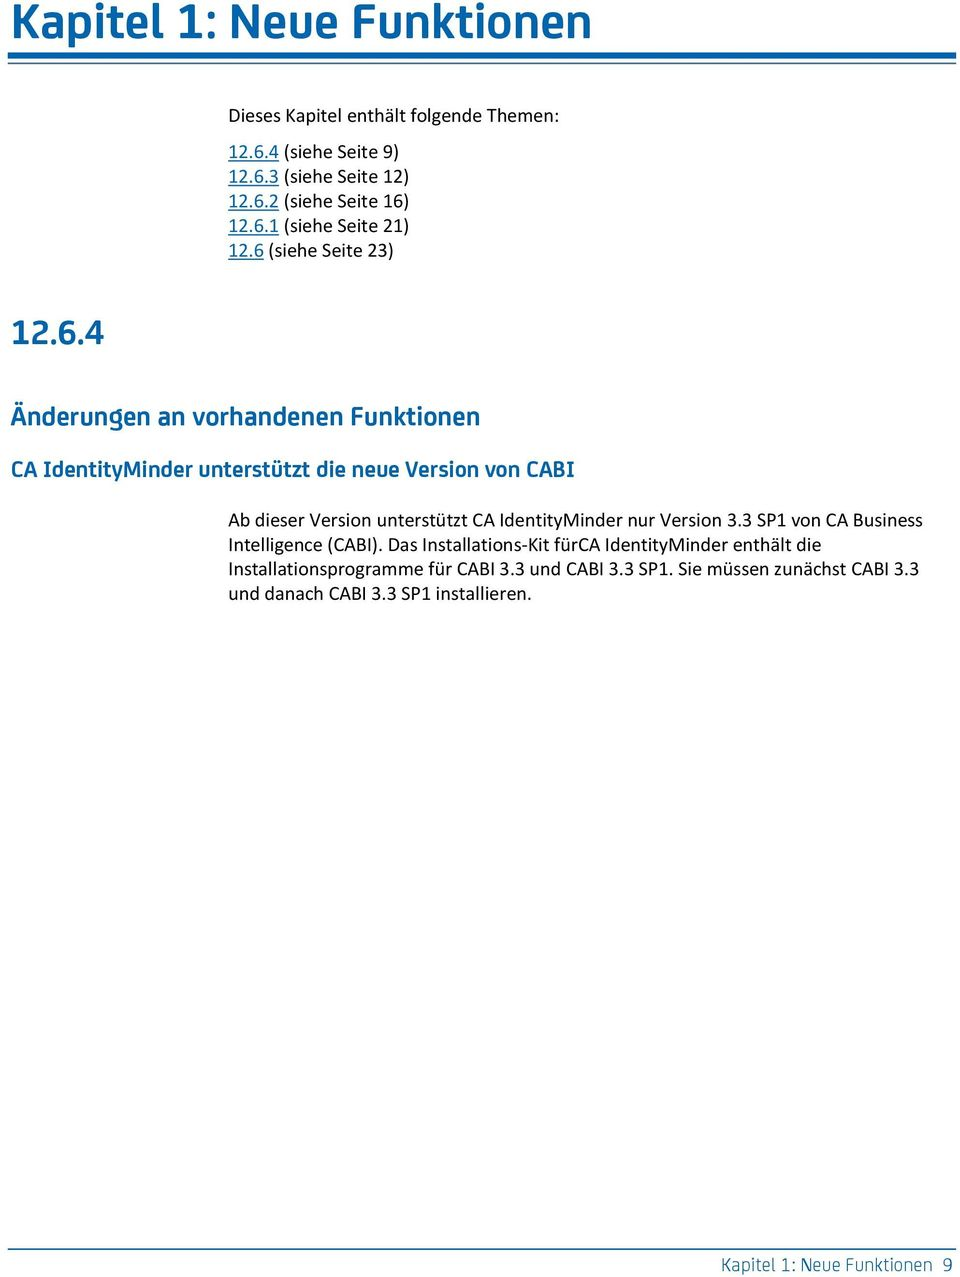 CA IdentityMinder nur Version 3.3 SP1 von CA Business Intelligence (CABI).